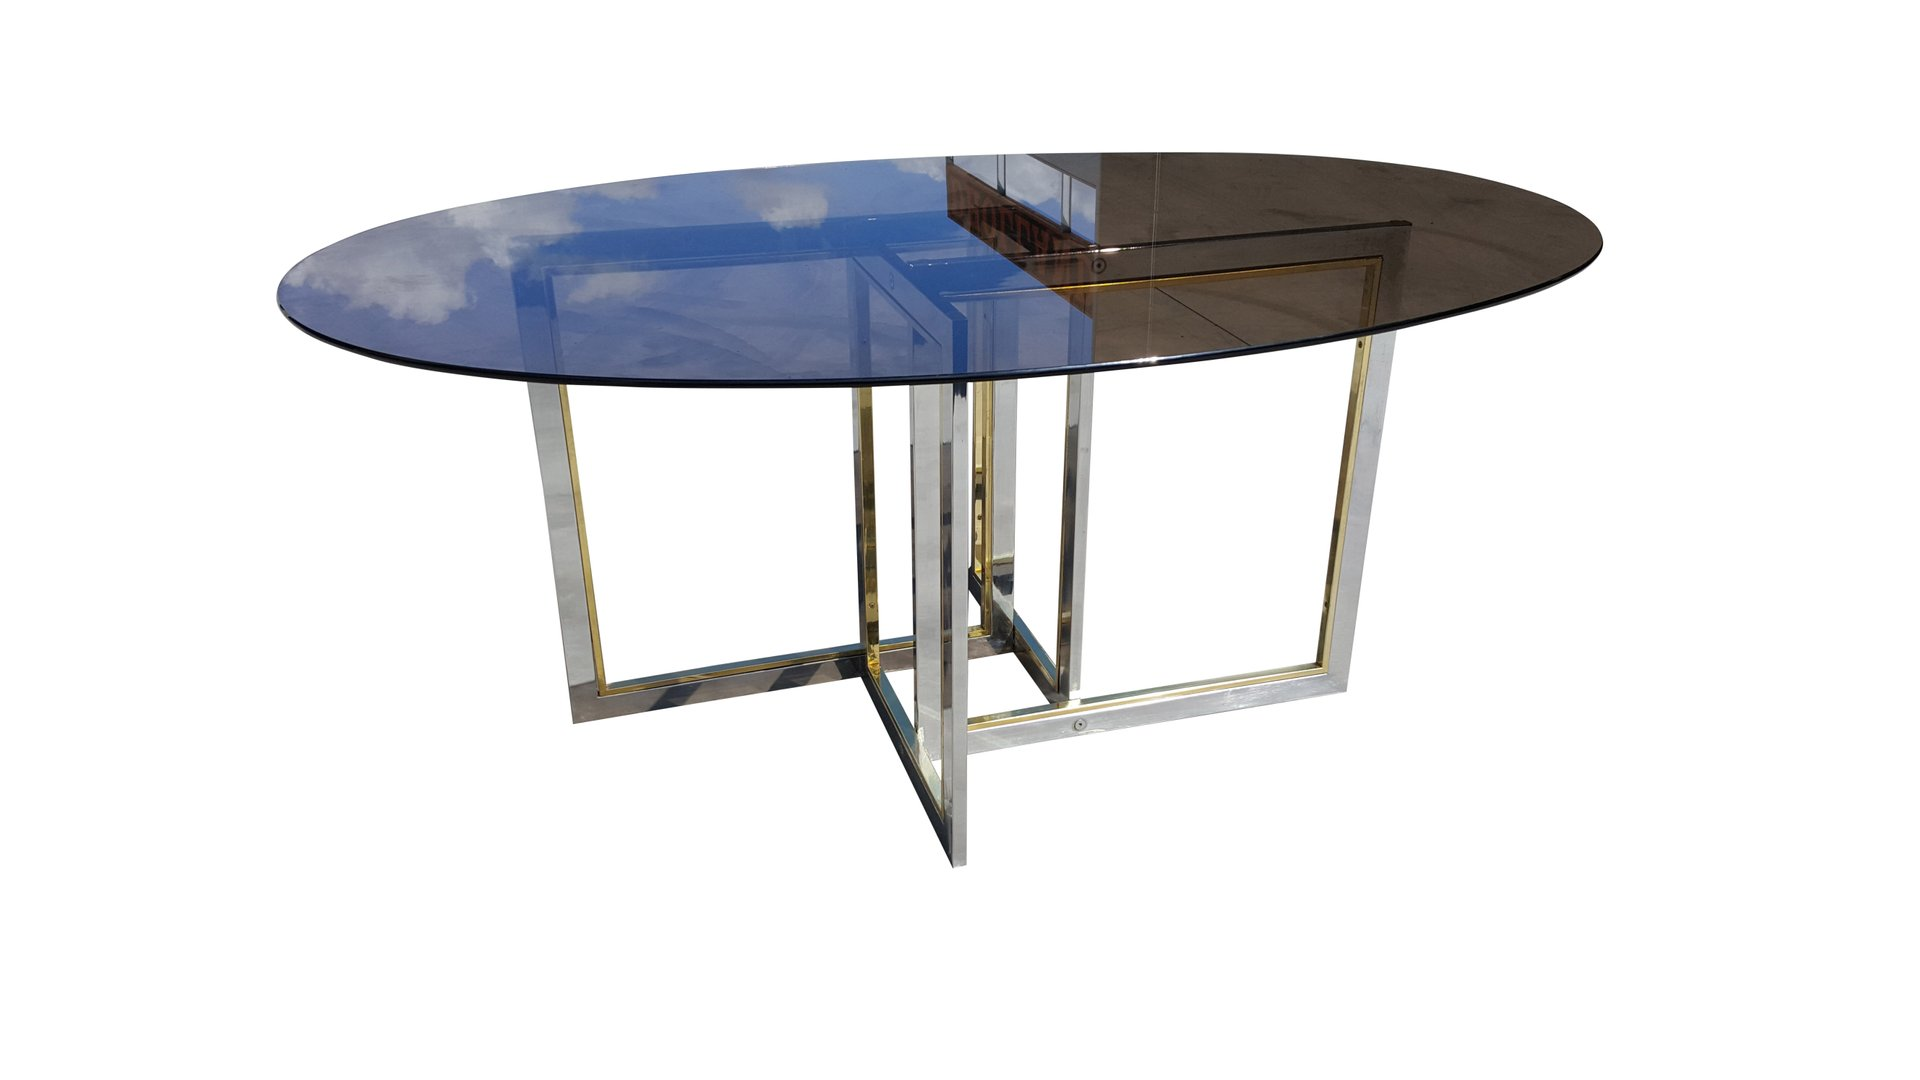 midcentury brass chrome and glass dining table by willy rizzo  - midcentury brass chrome and glass dining table by willy rizzo